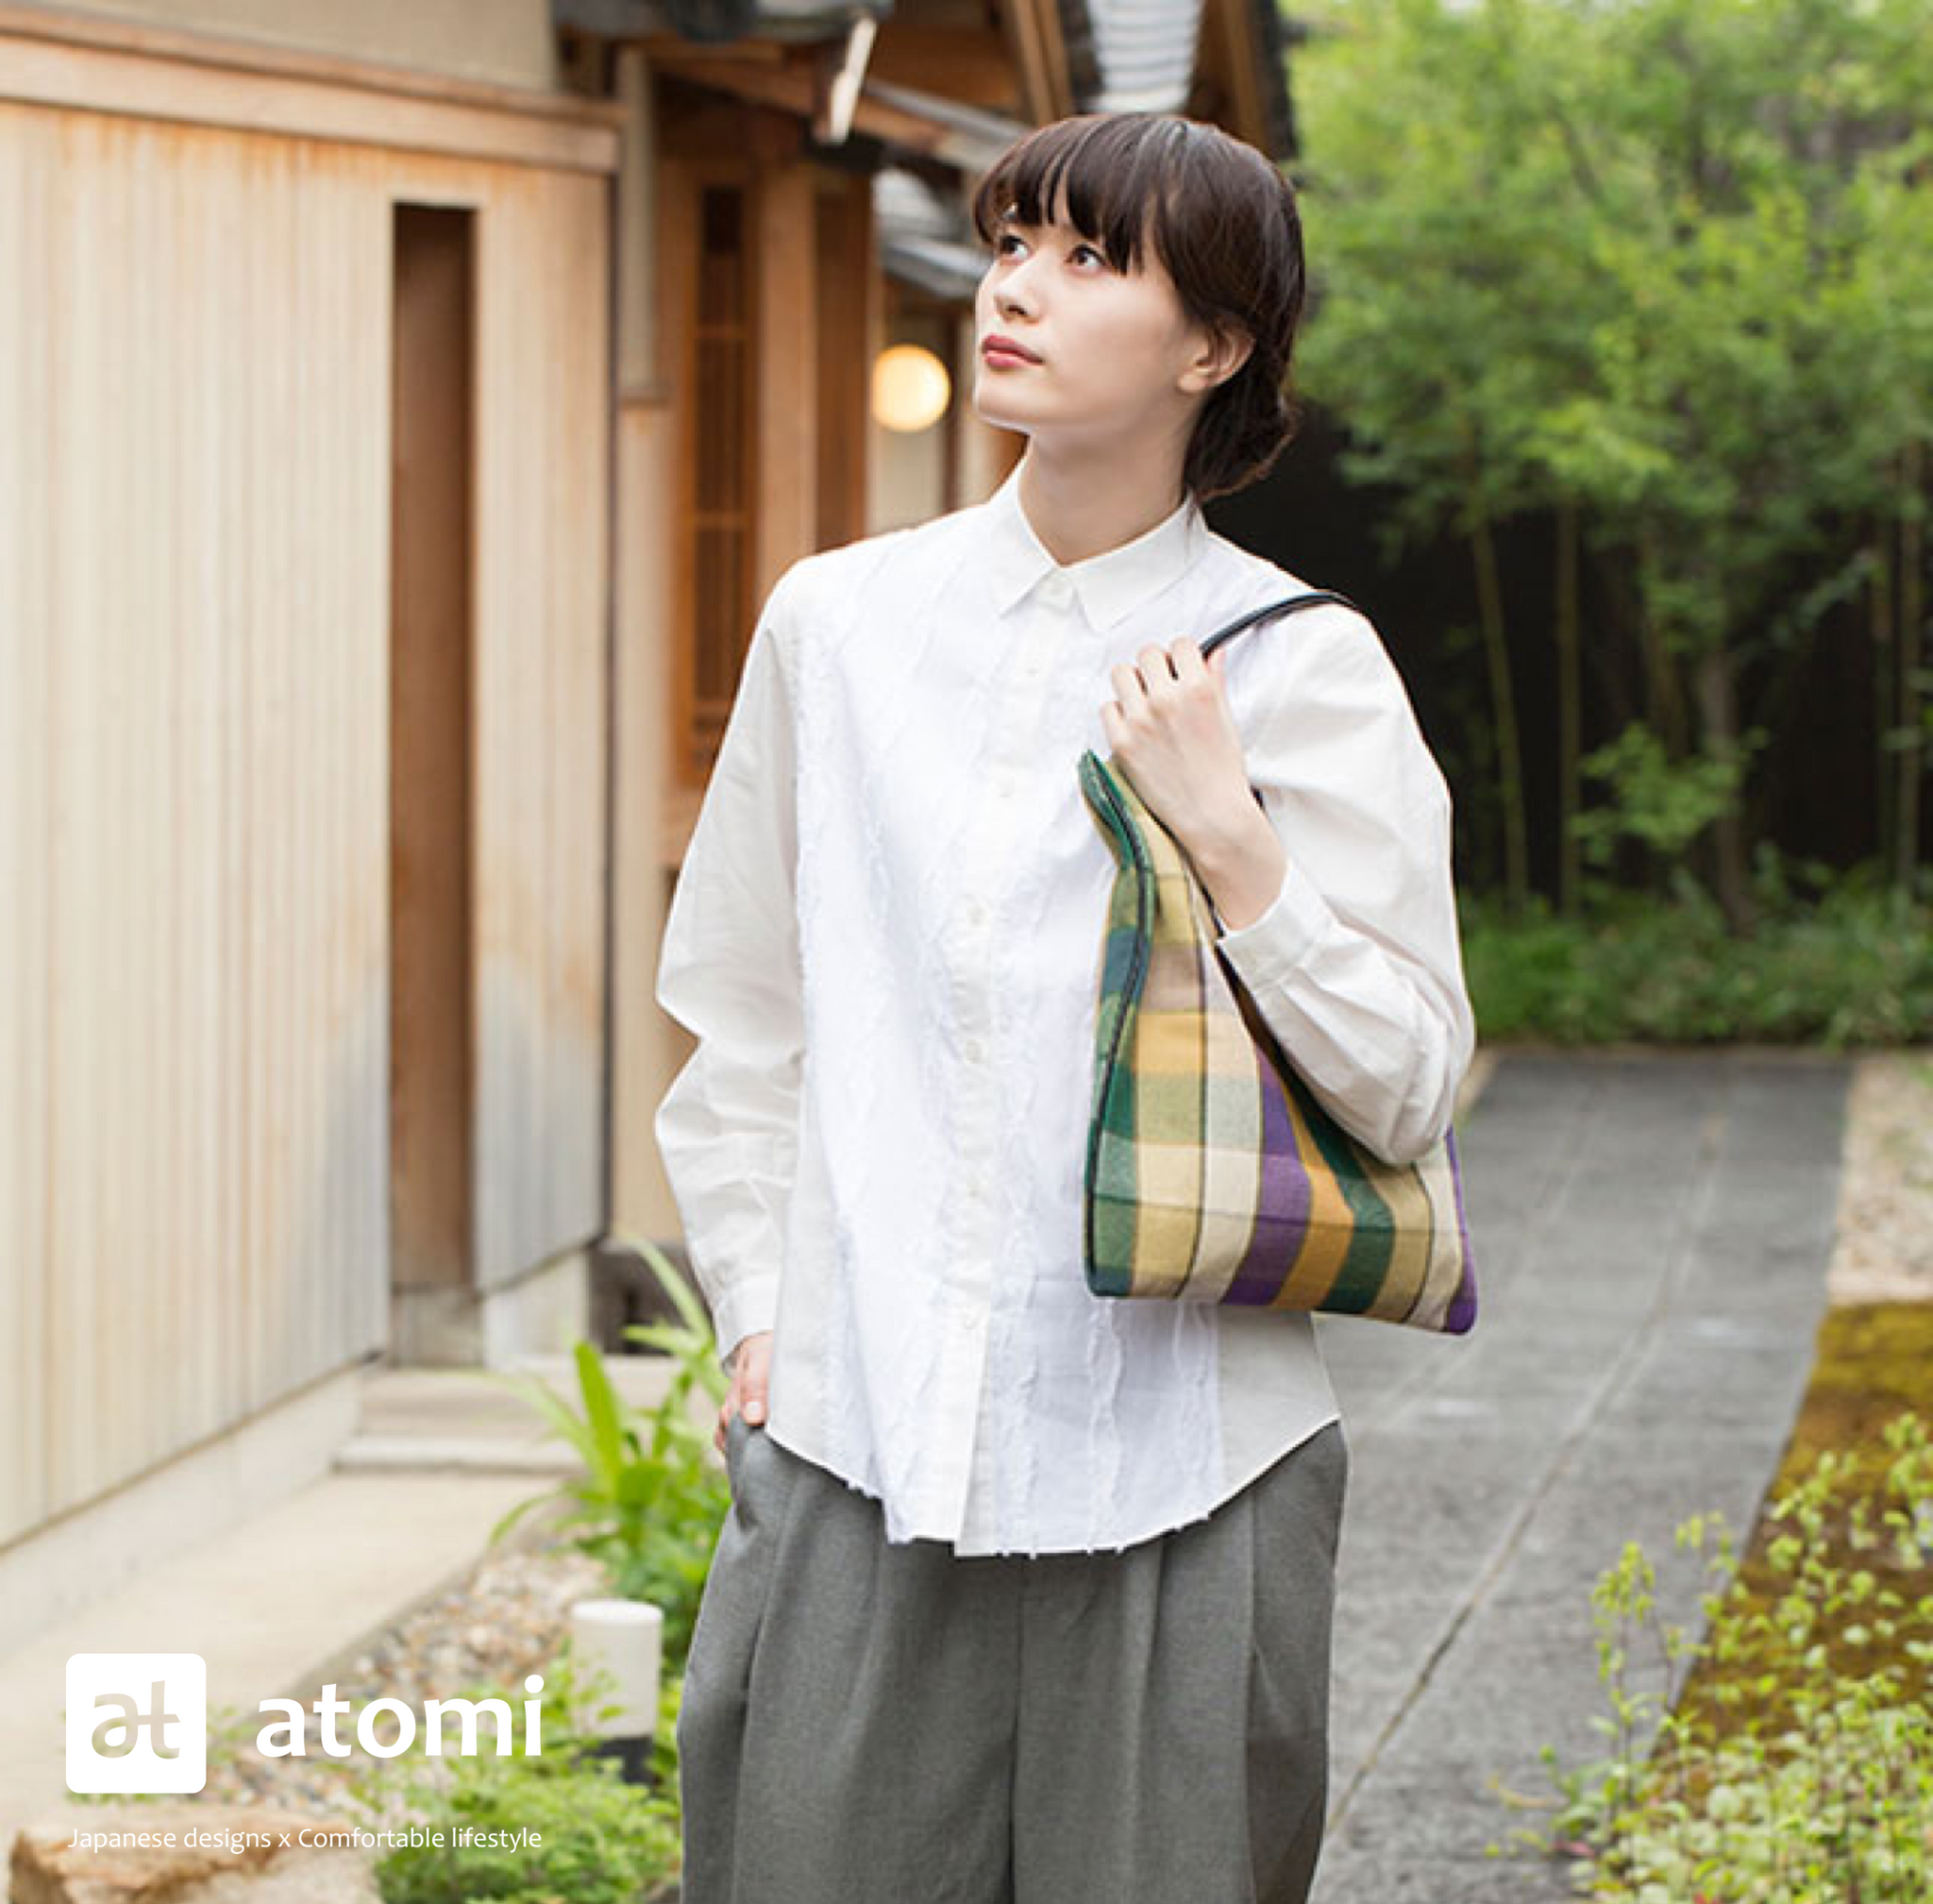 Ichimatsu Checkered Top Handle Tote Bag